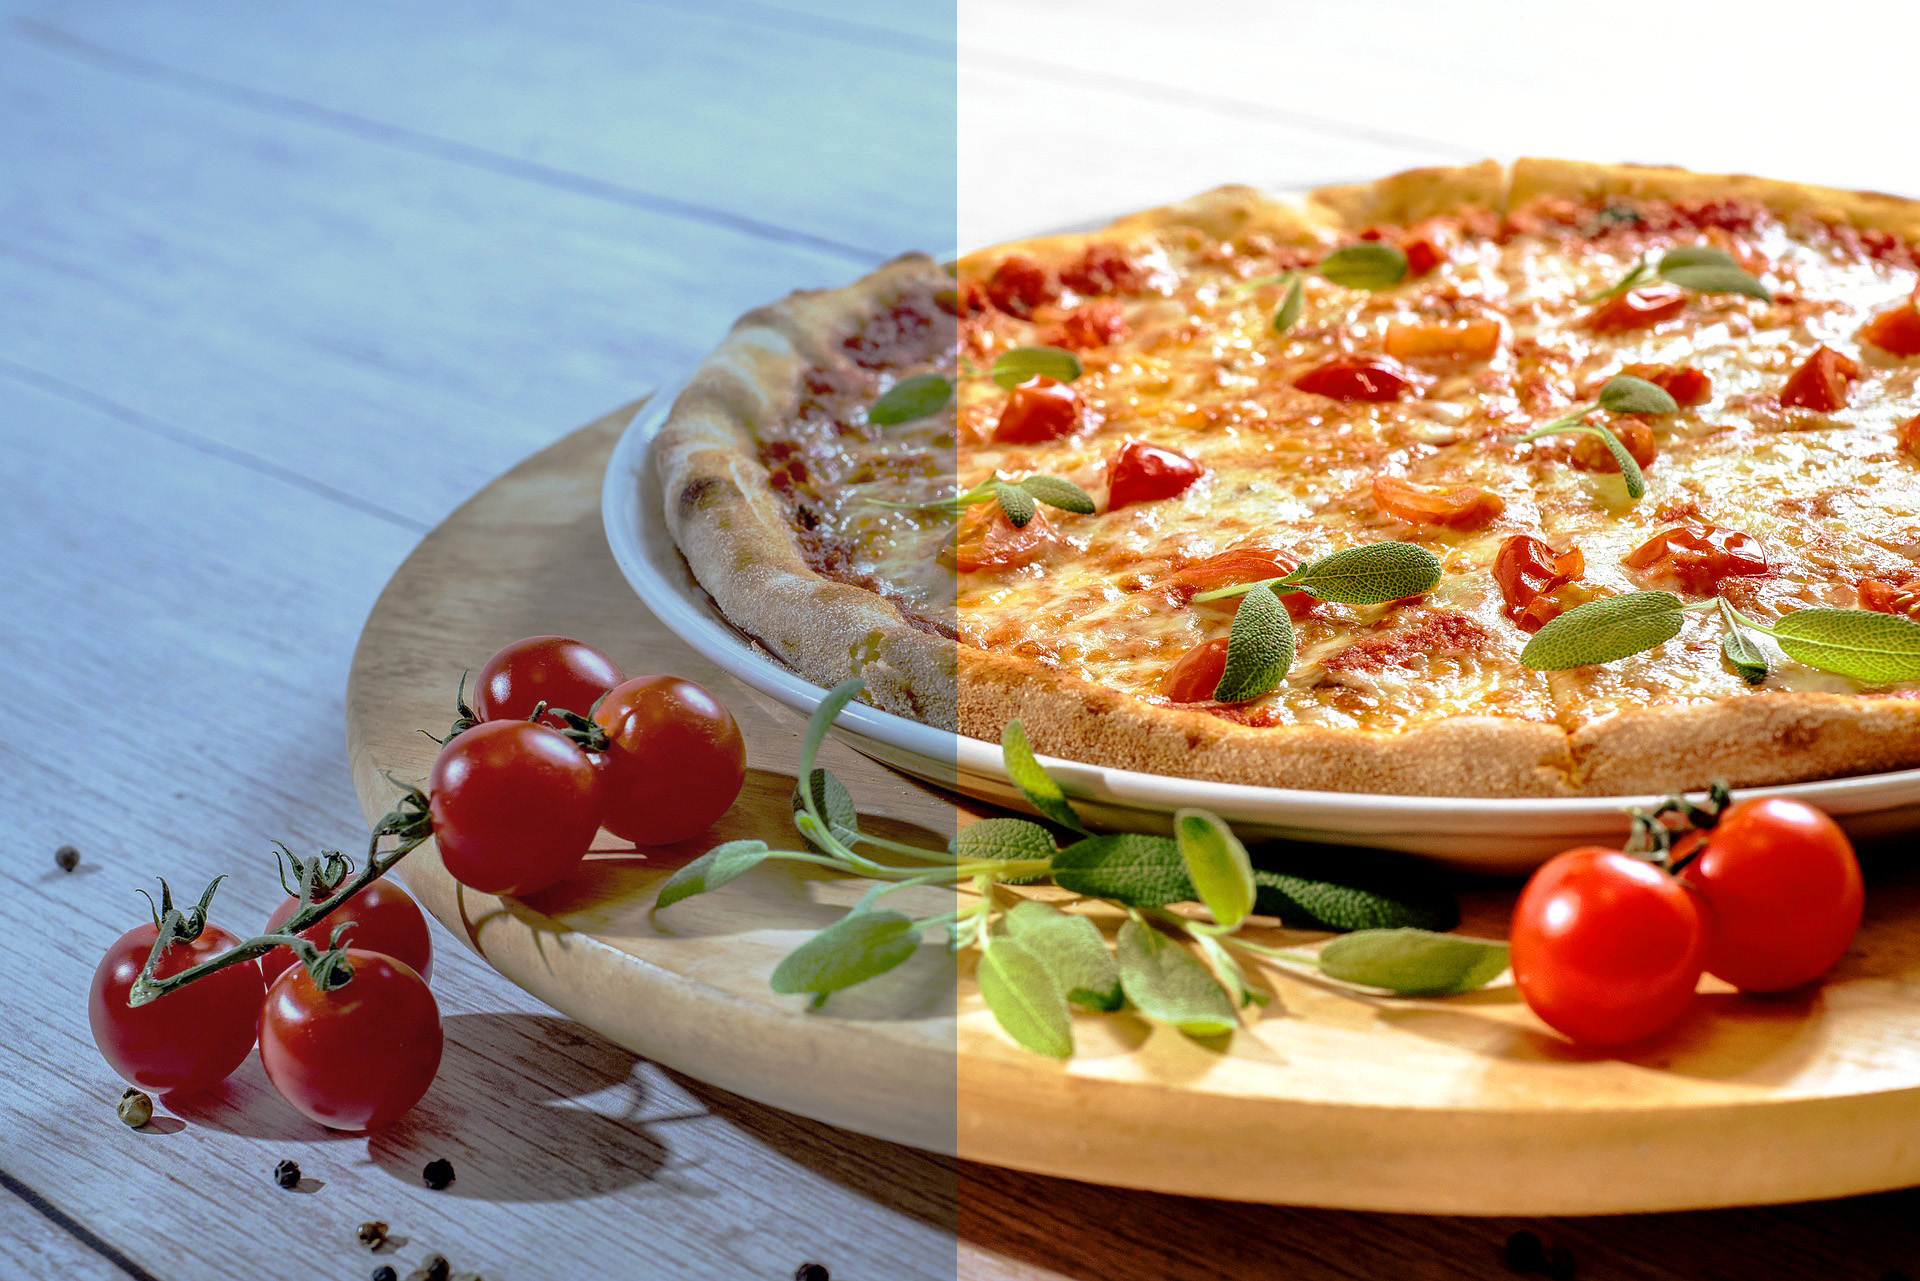 A screenshot showing how to edit food photography in Photoshop - before and after editing